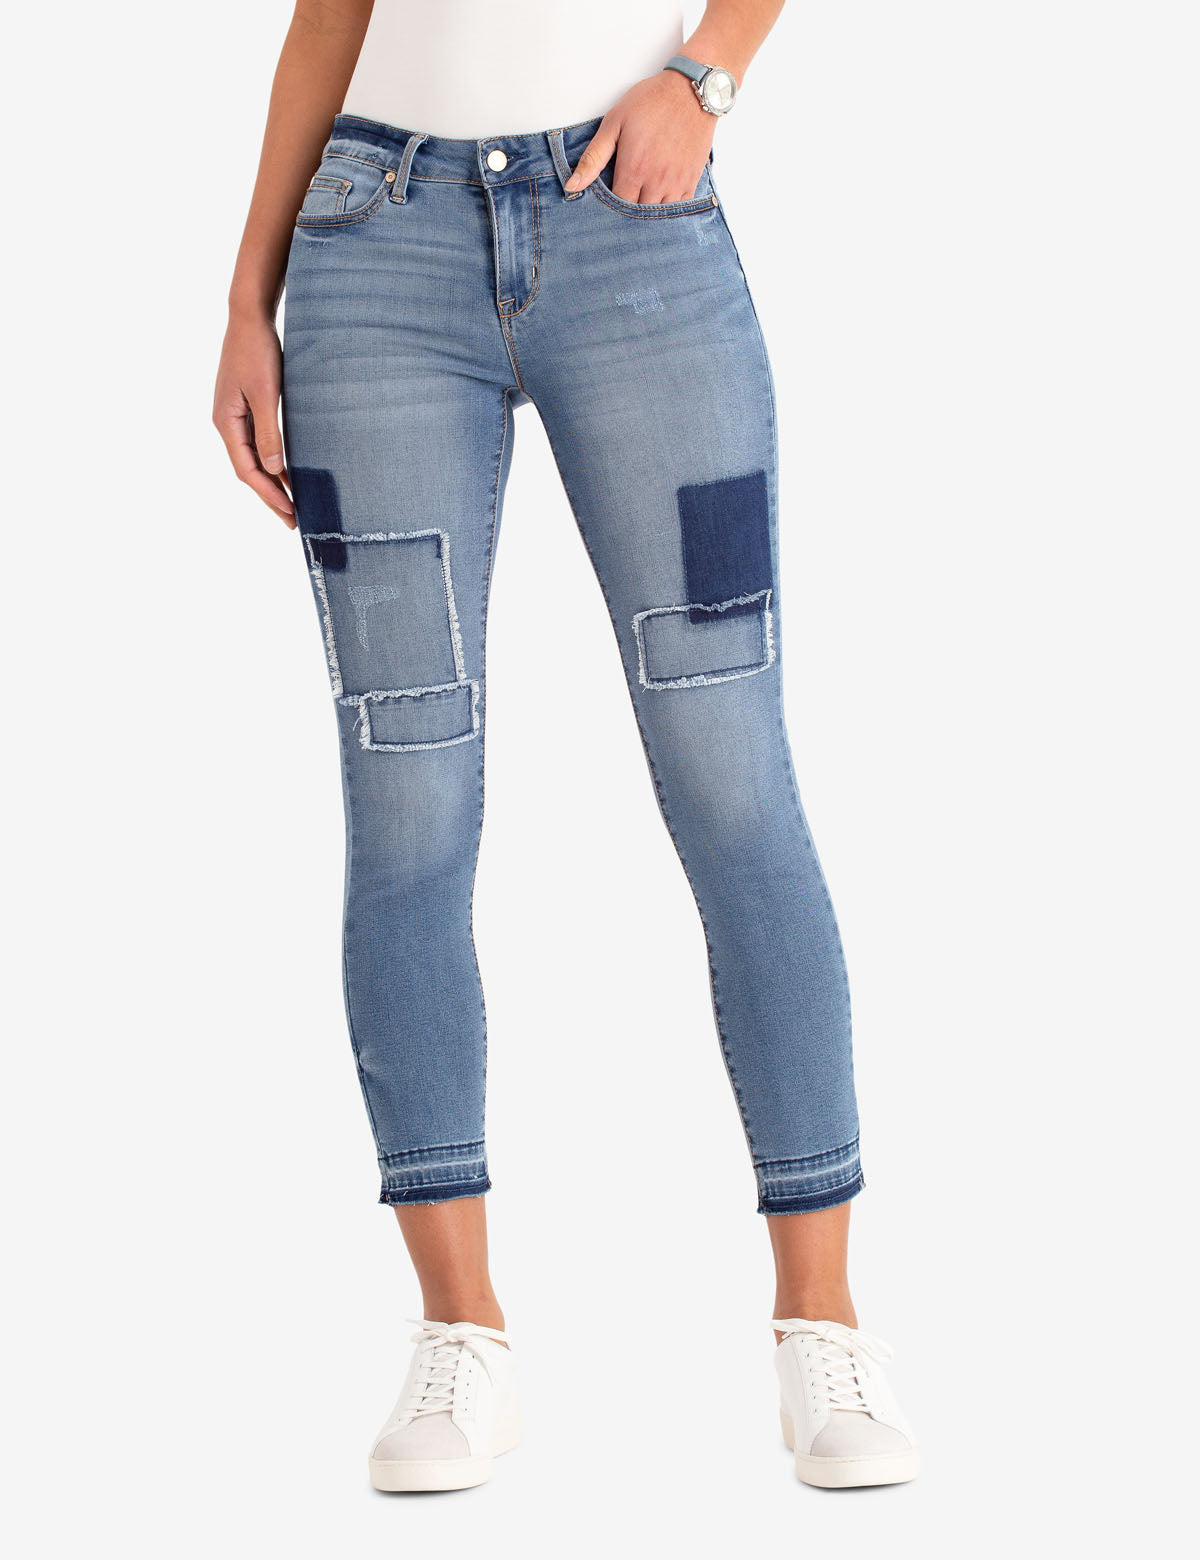 MID RISE SHORT SUPER SKINNY PATCHED JEANS